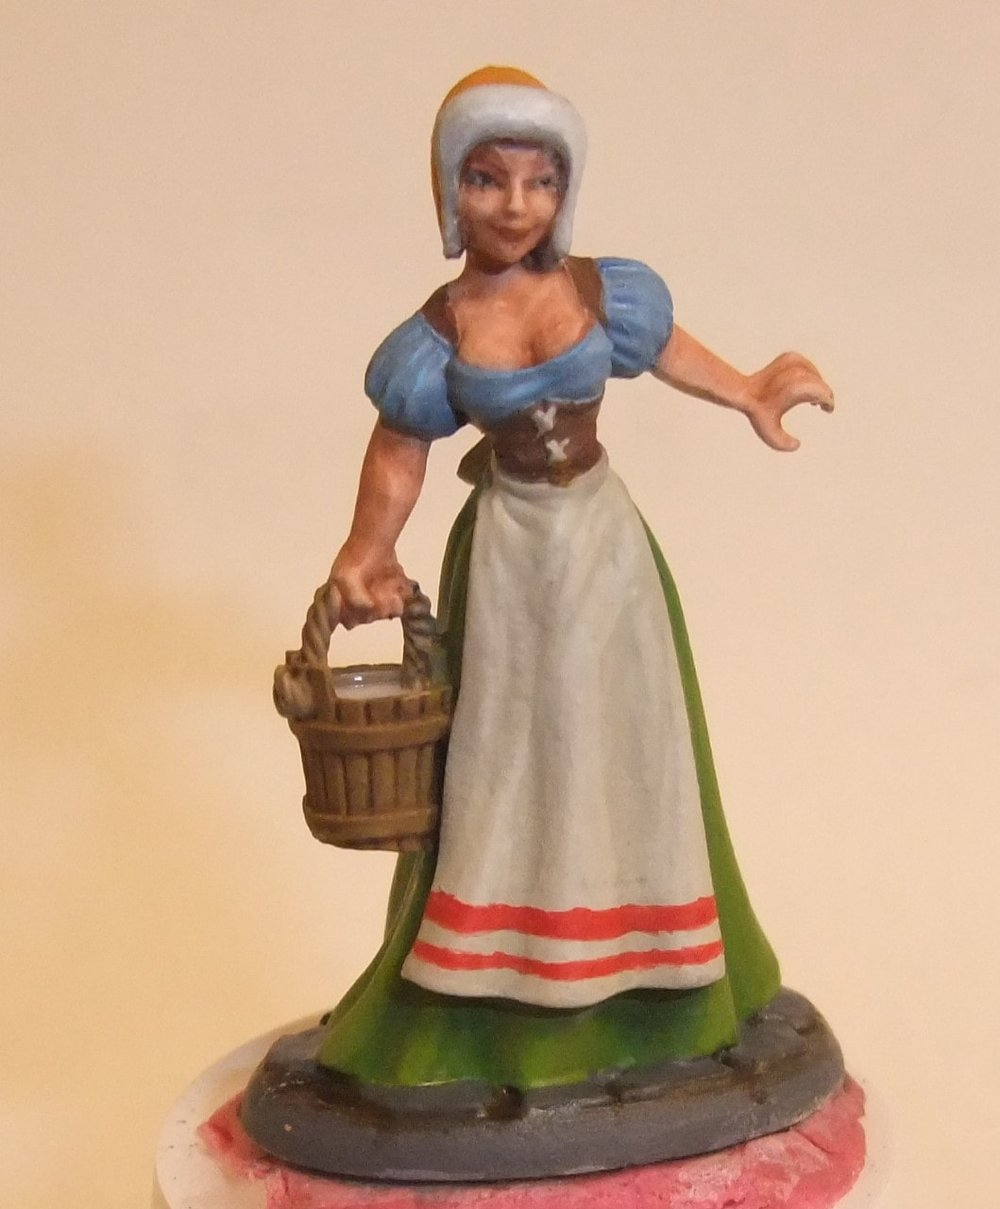 I plan on using her as a generic townsfolk in my D&D / Pathfinder games.